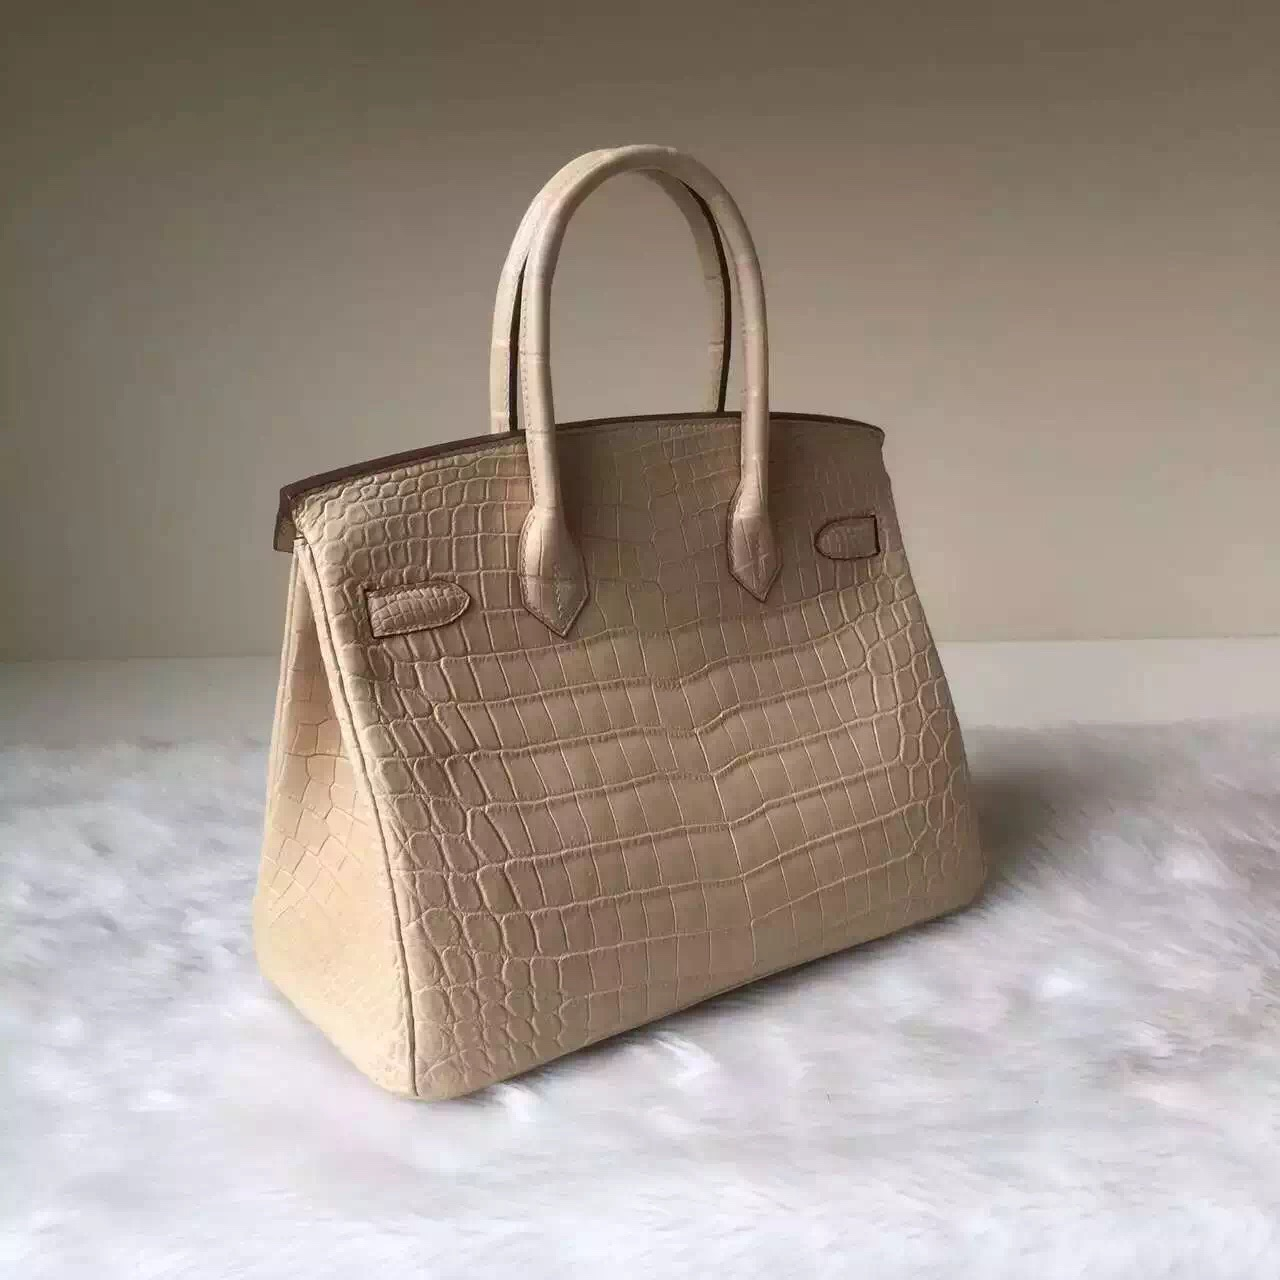 Sale Hermes Bag Apricot Crocodile Matt Leather Birkin Bag 30CM